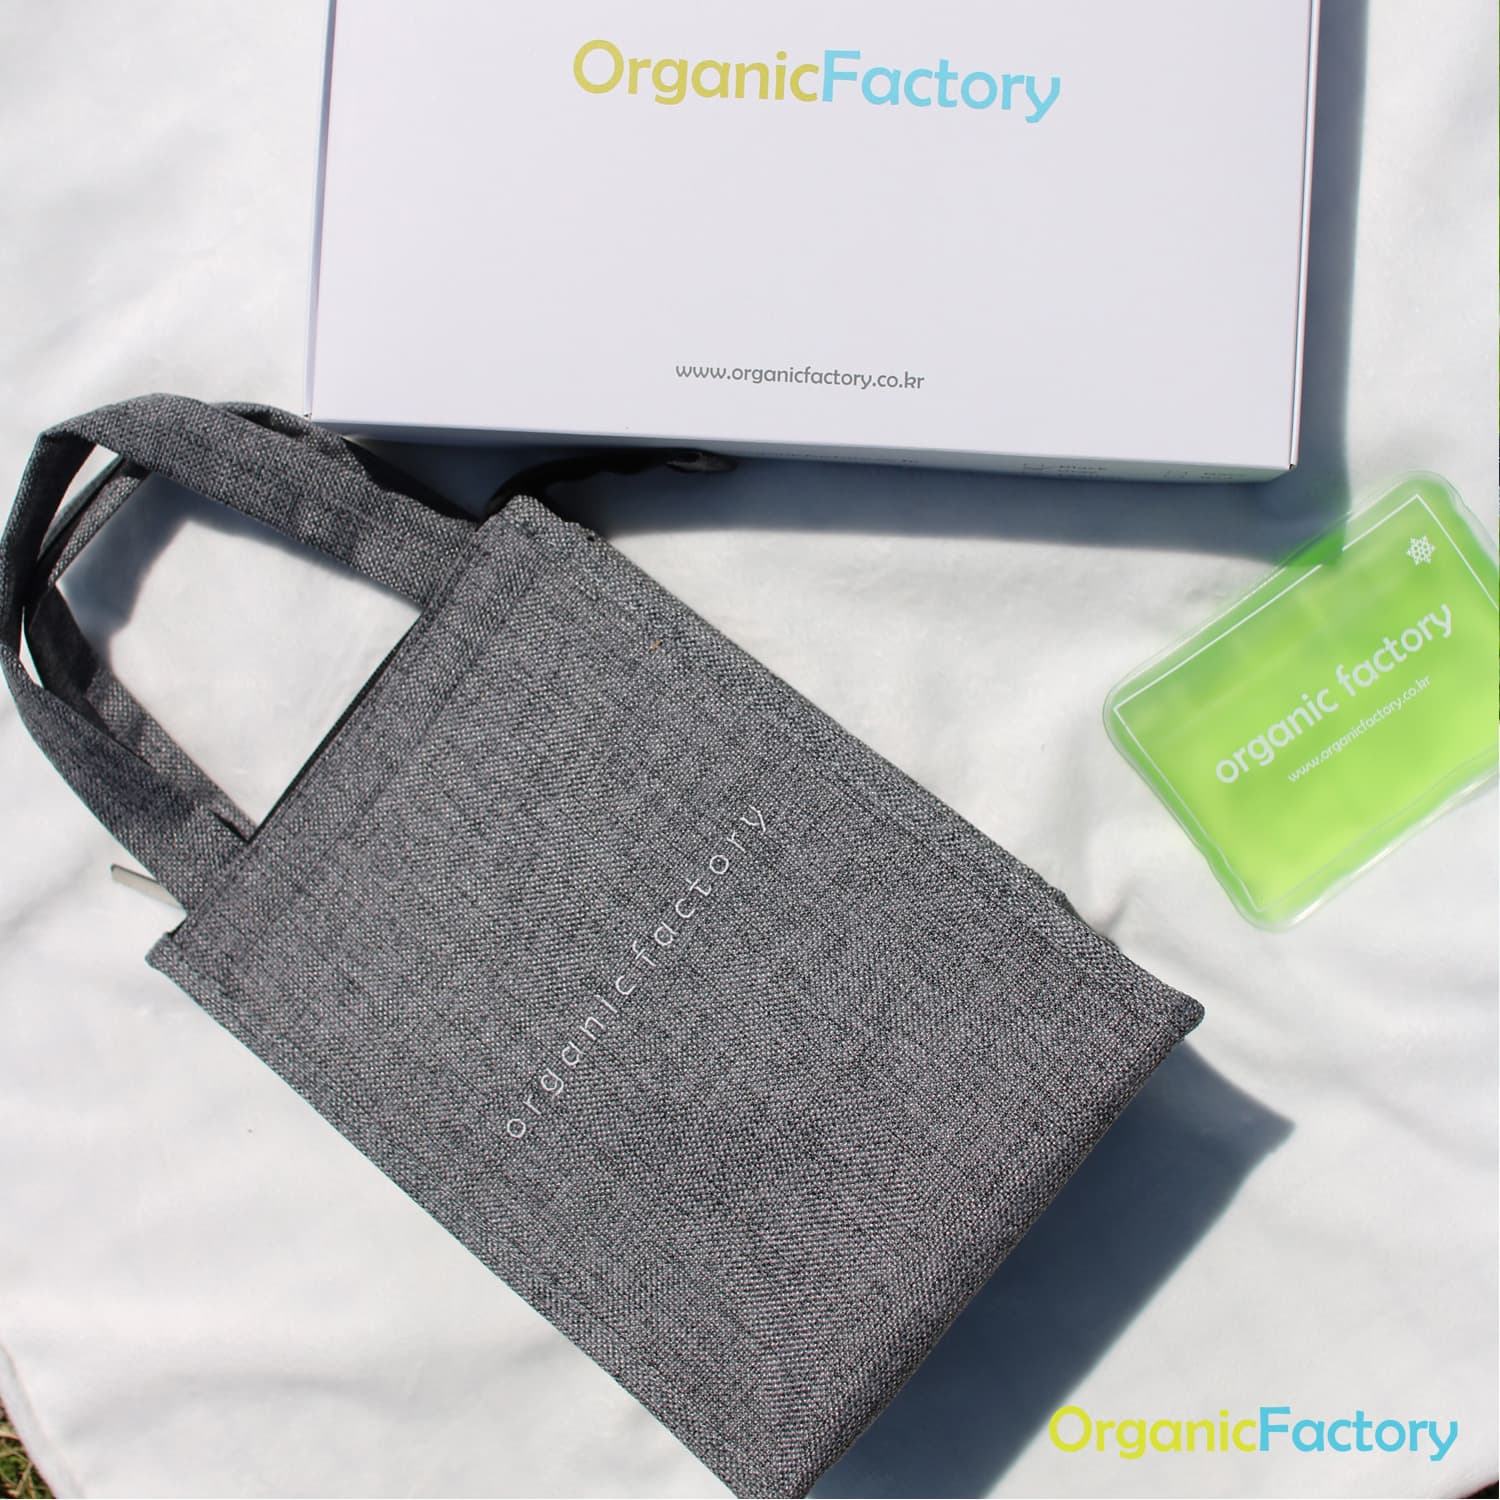 Organicfactory Multipurpose Cooling Bag From Organic